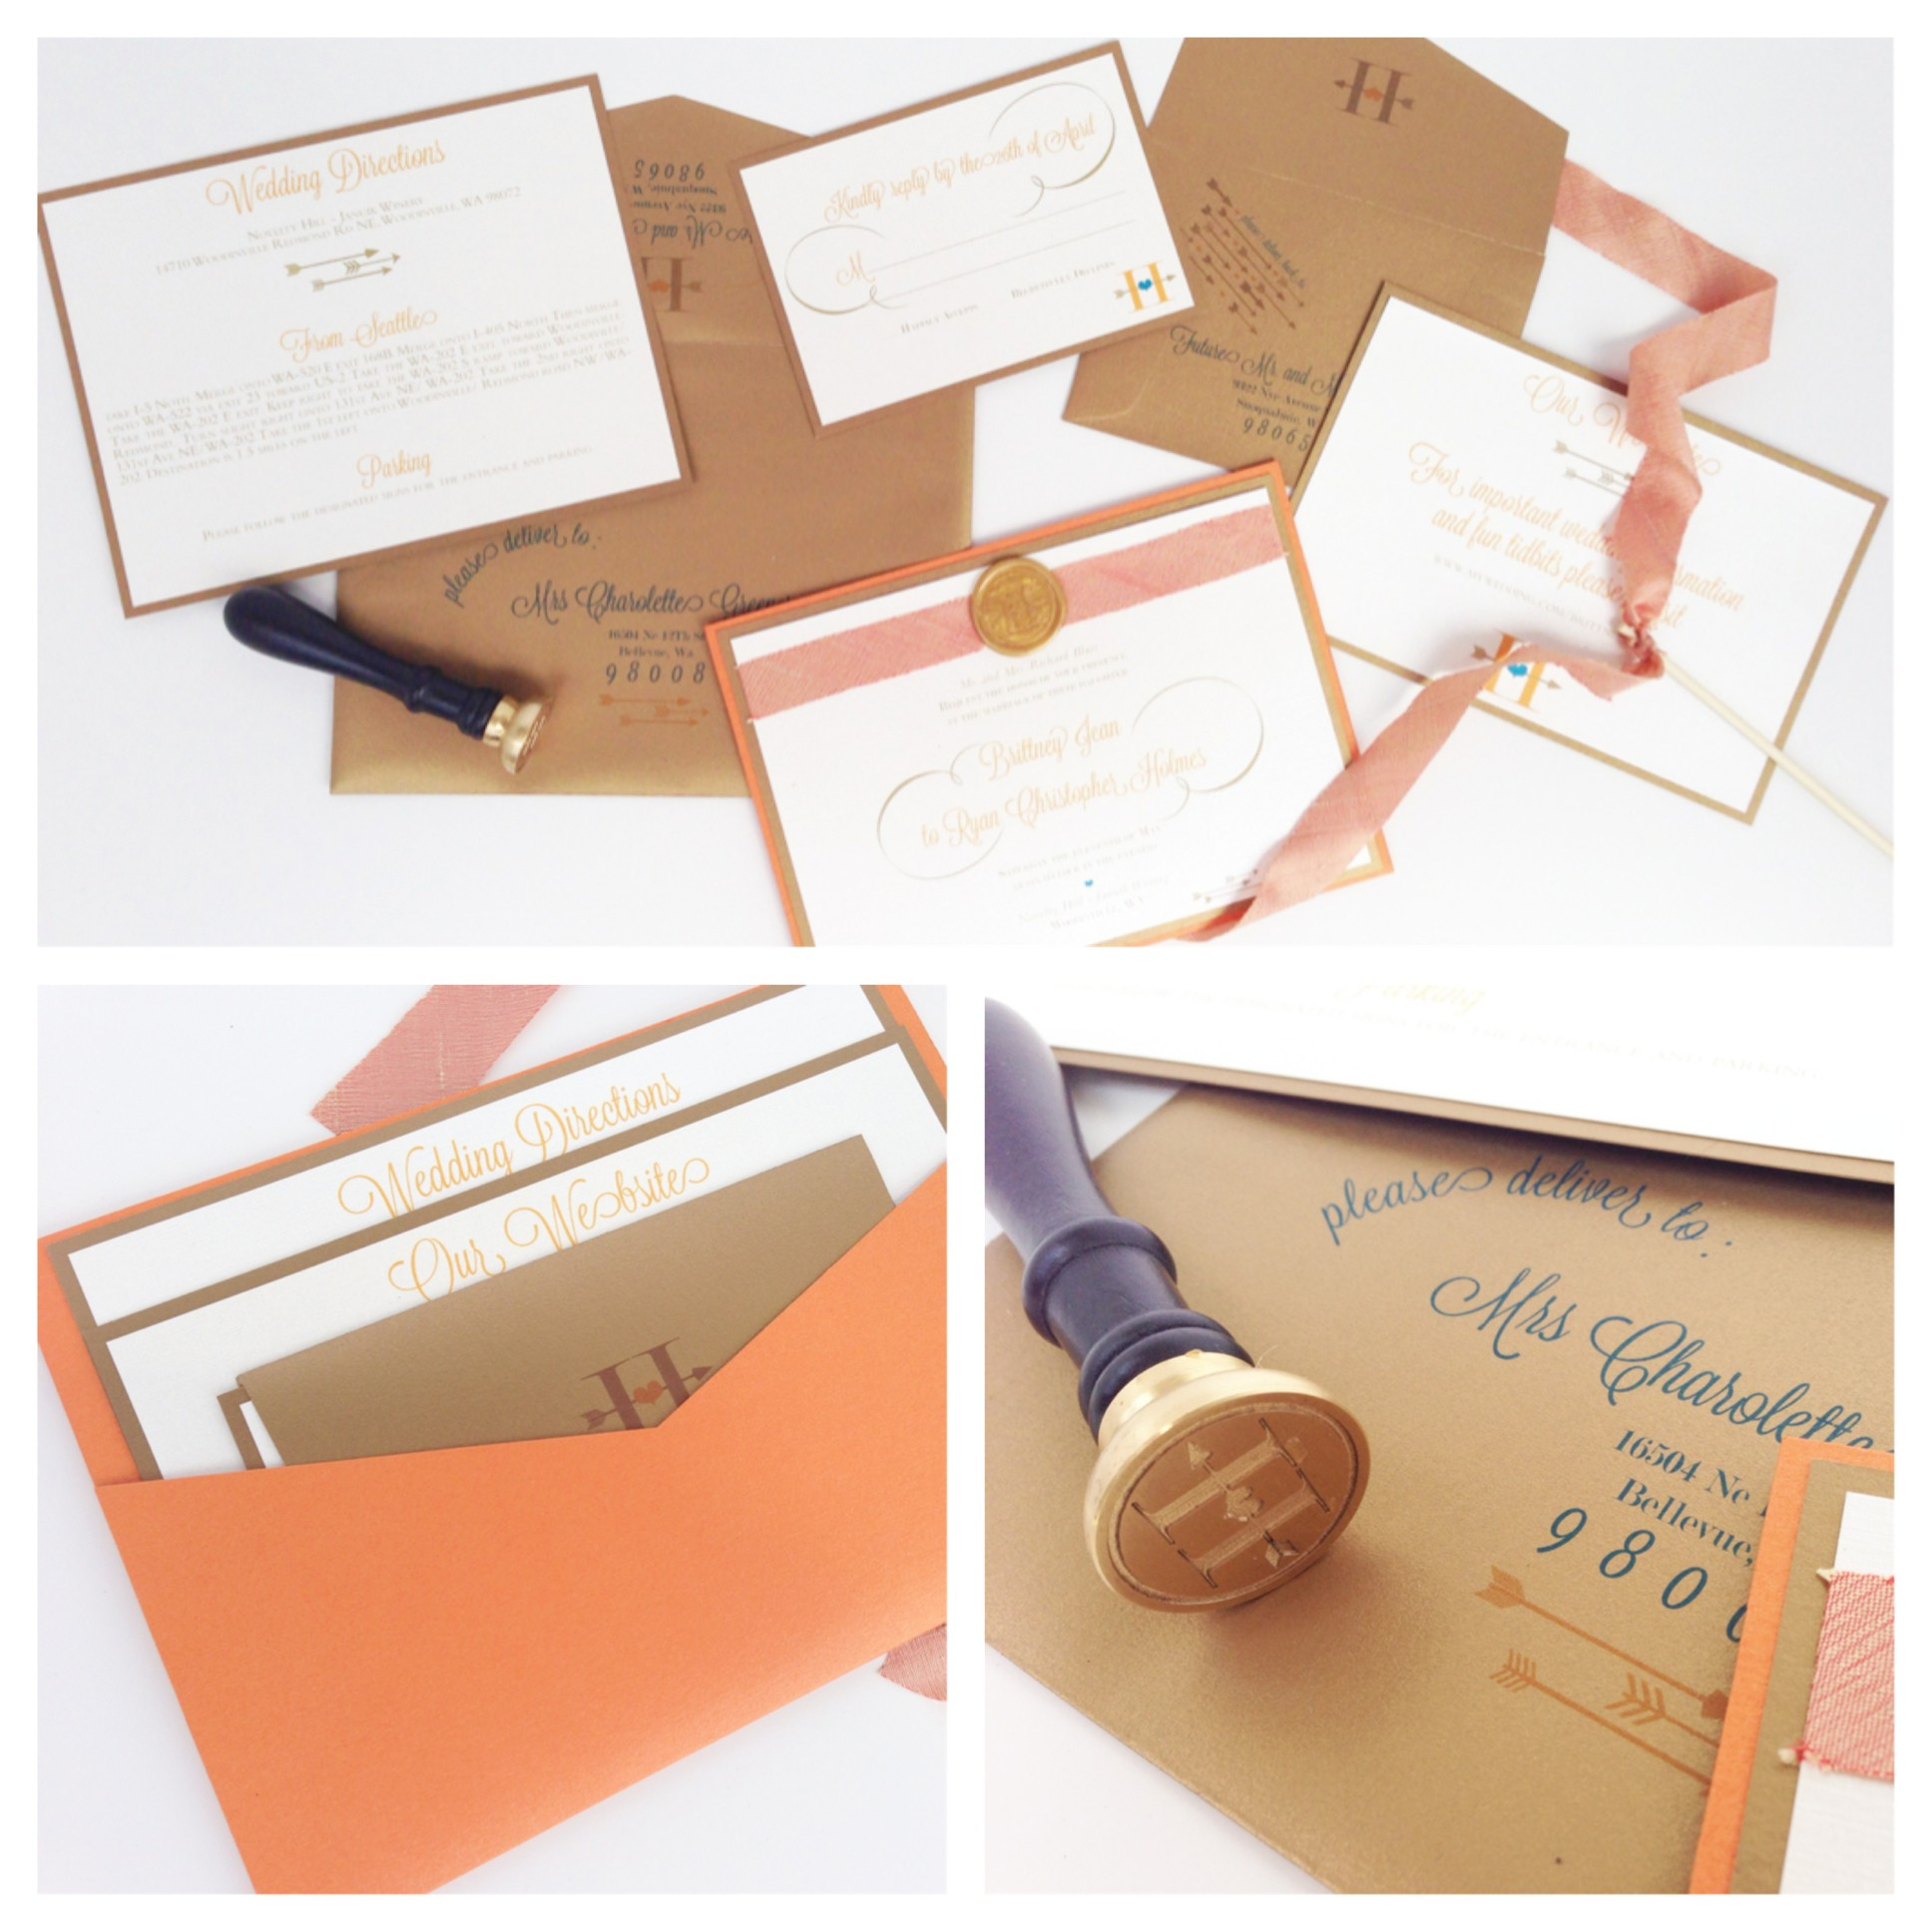 wedding invitations, orange and blue invitations, wax seal, gold wax seal, pocket invitations